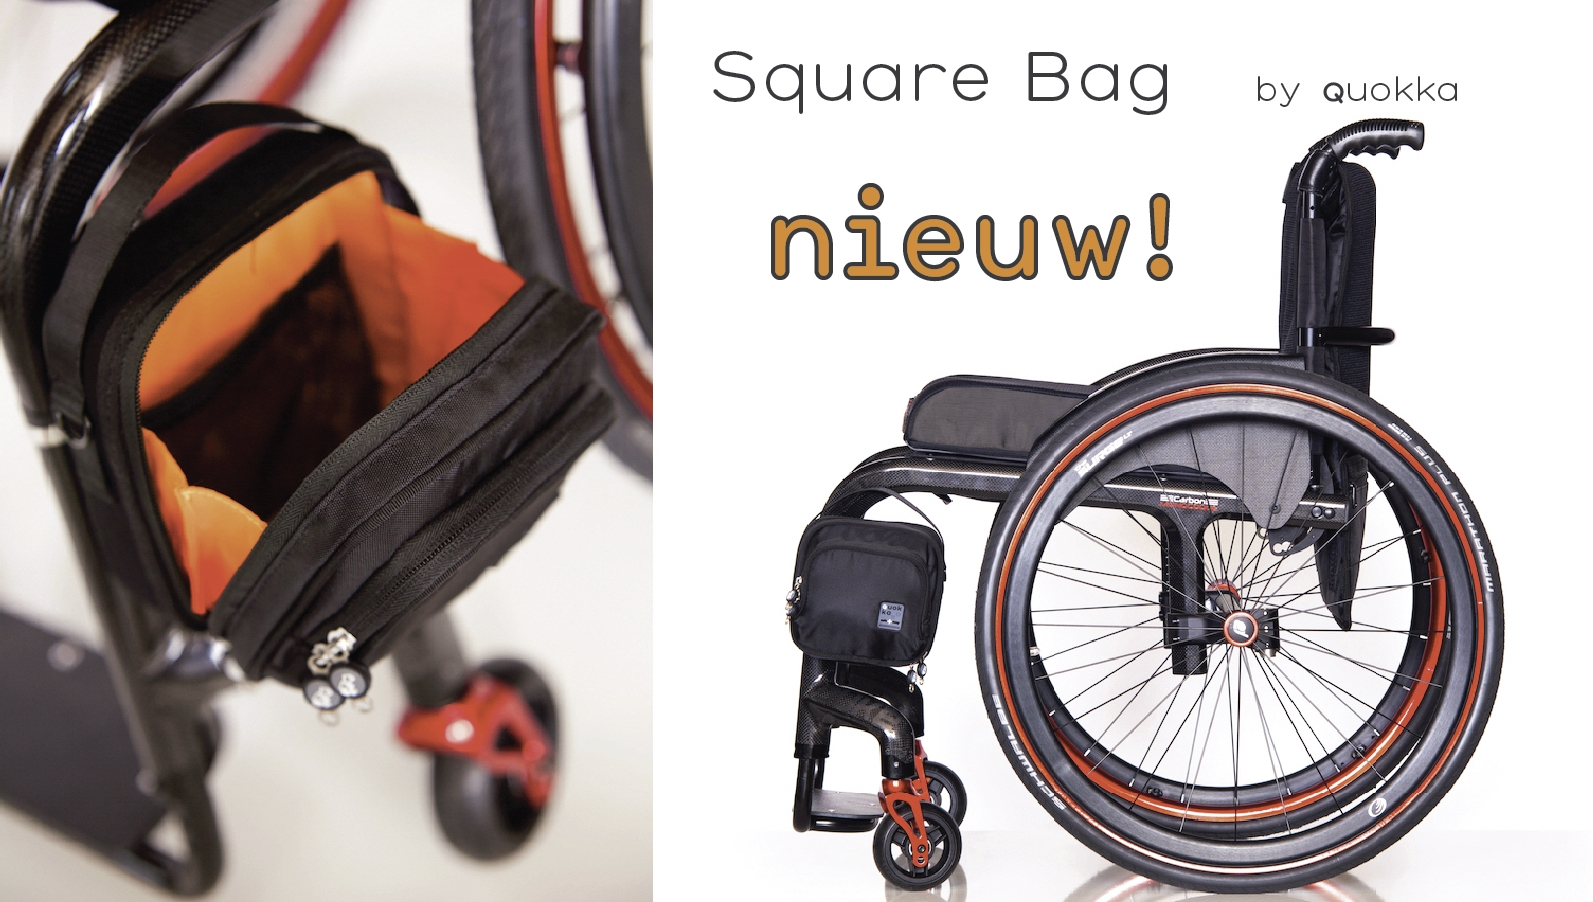 QUOKKA Square Bag SQ-ZW: The most accessible wheelchair bag